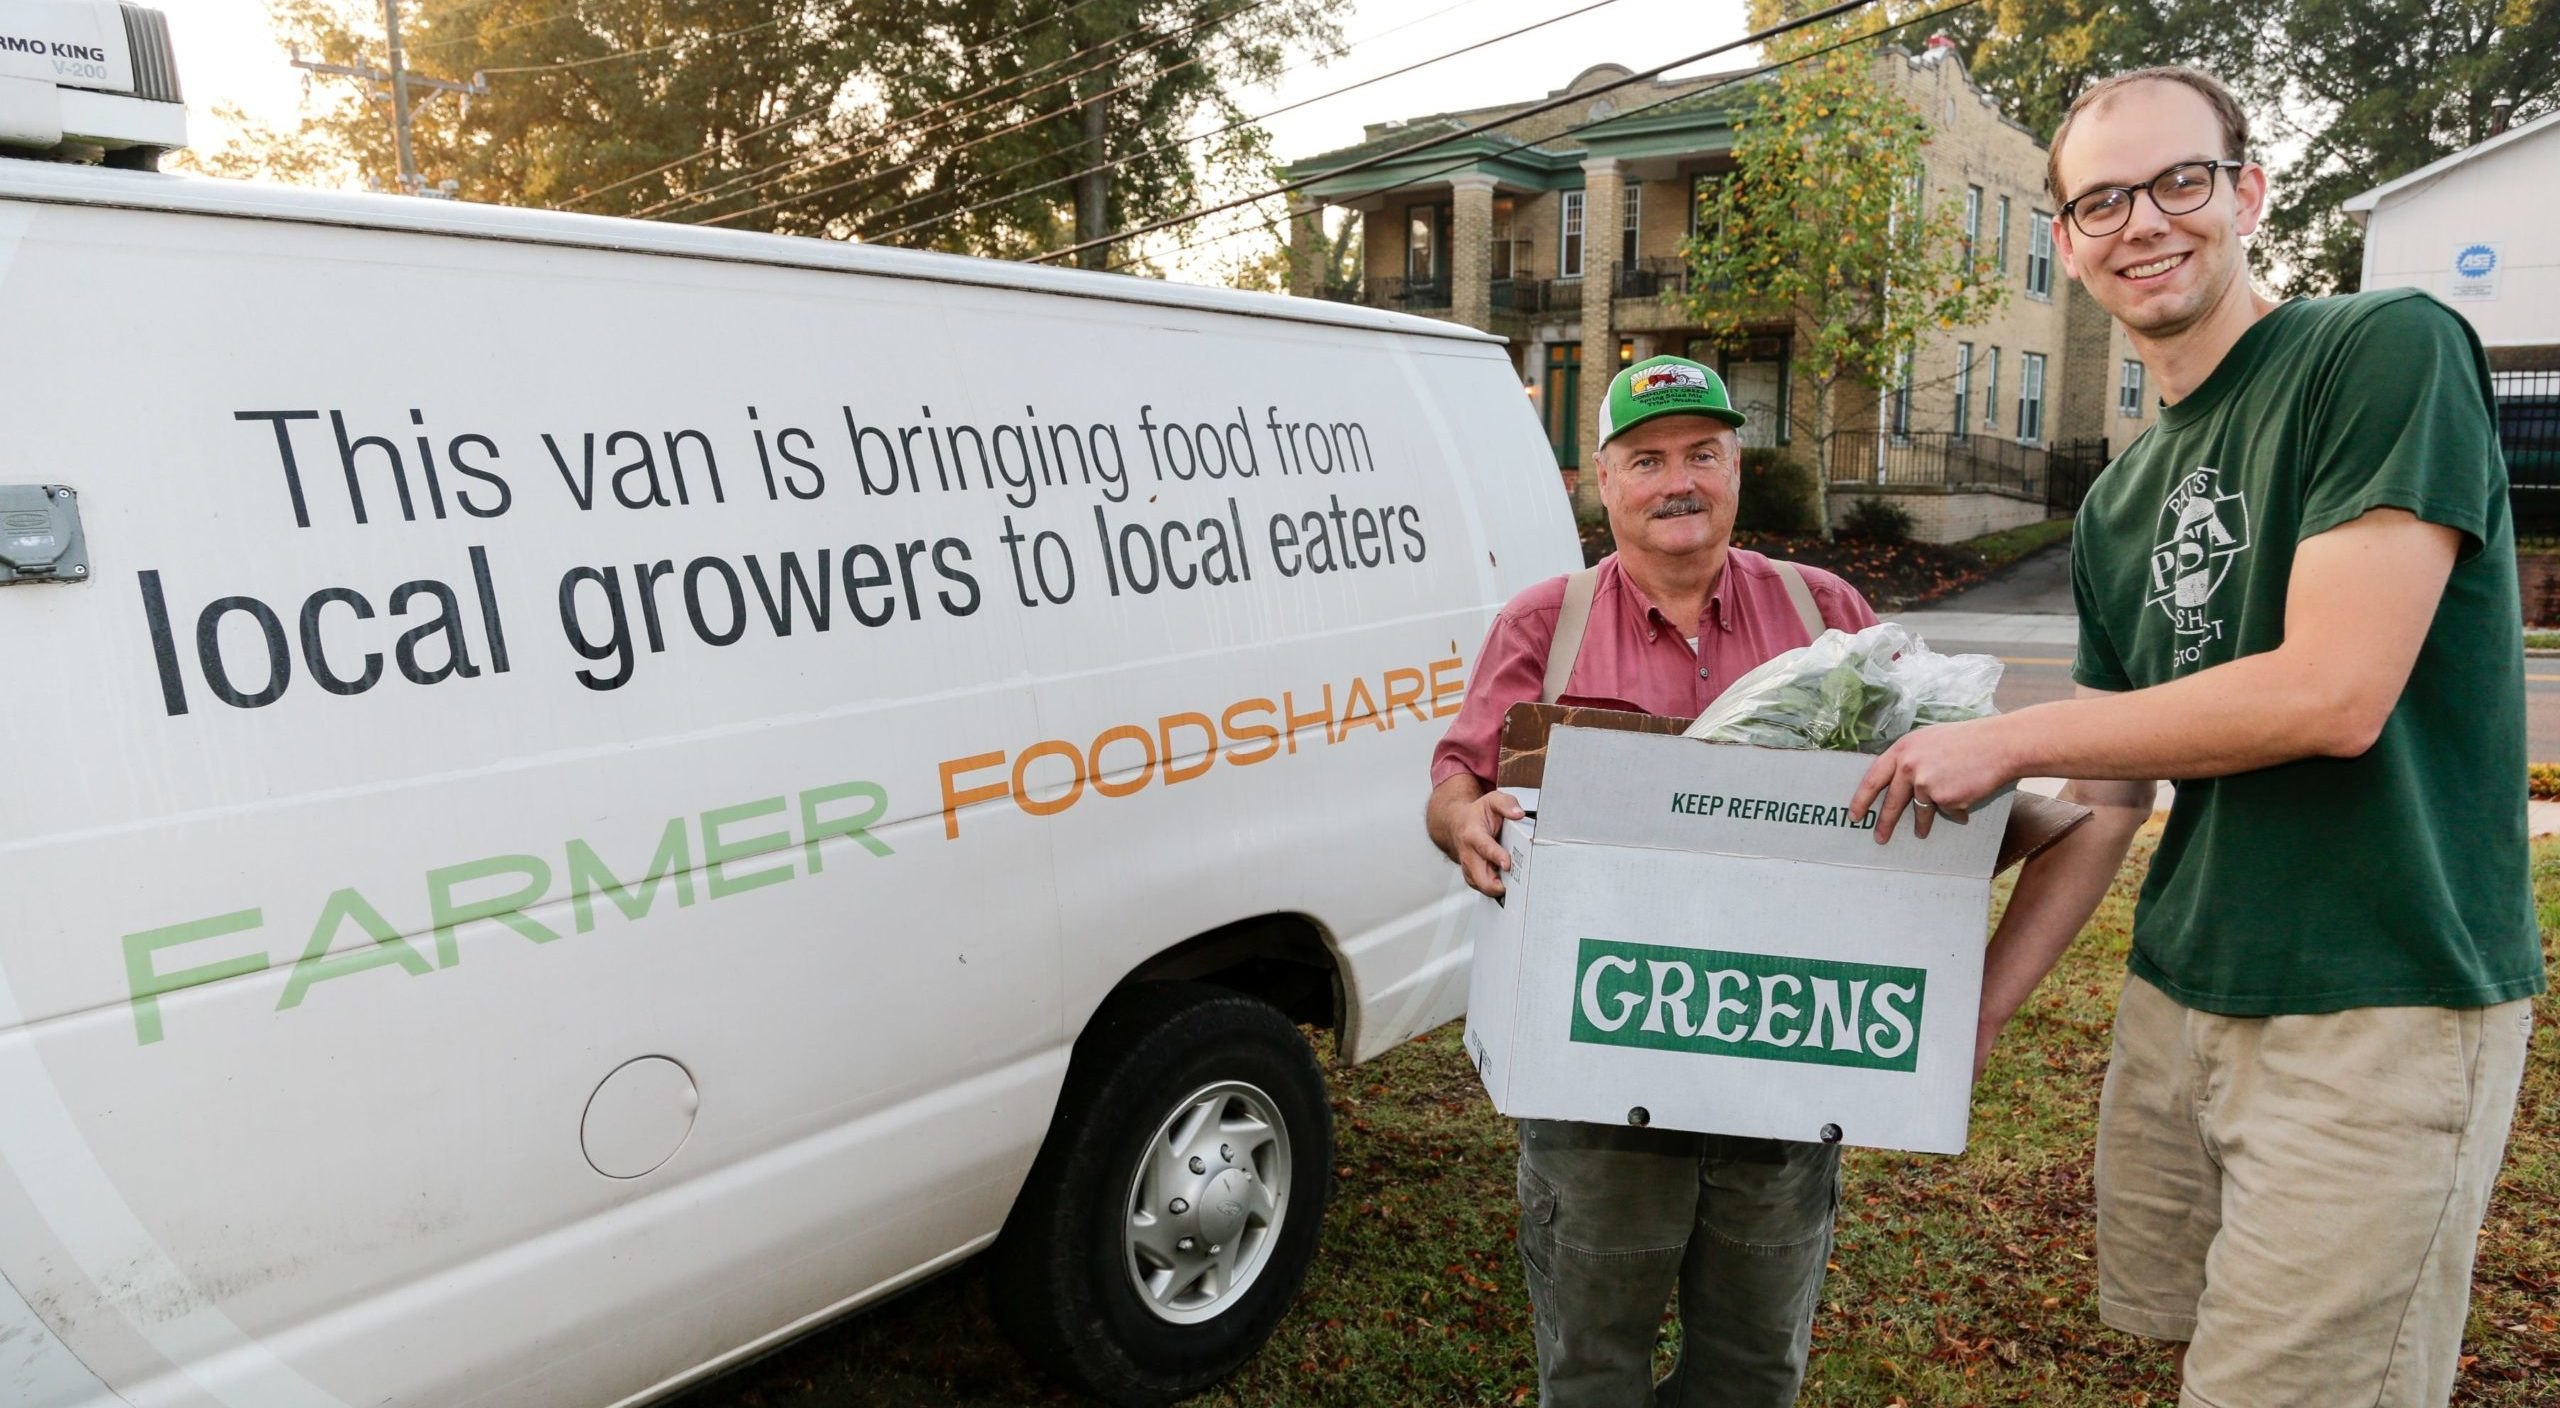 New cooler space improves access to local foods